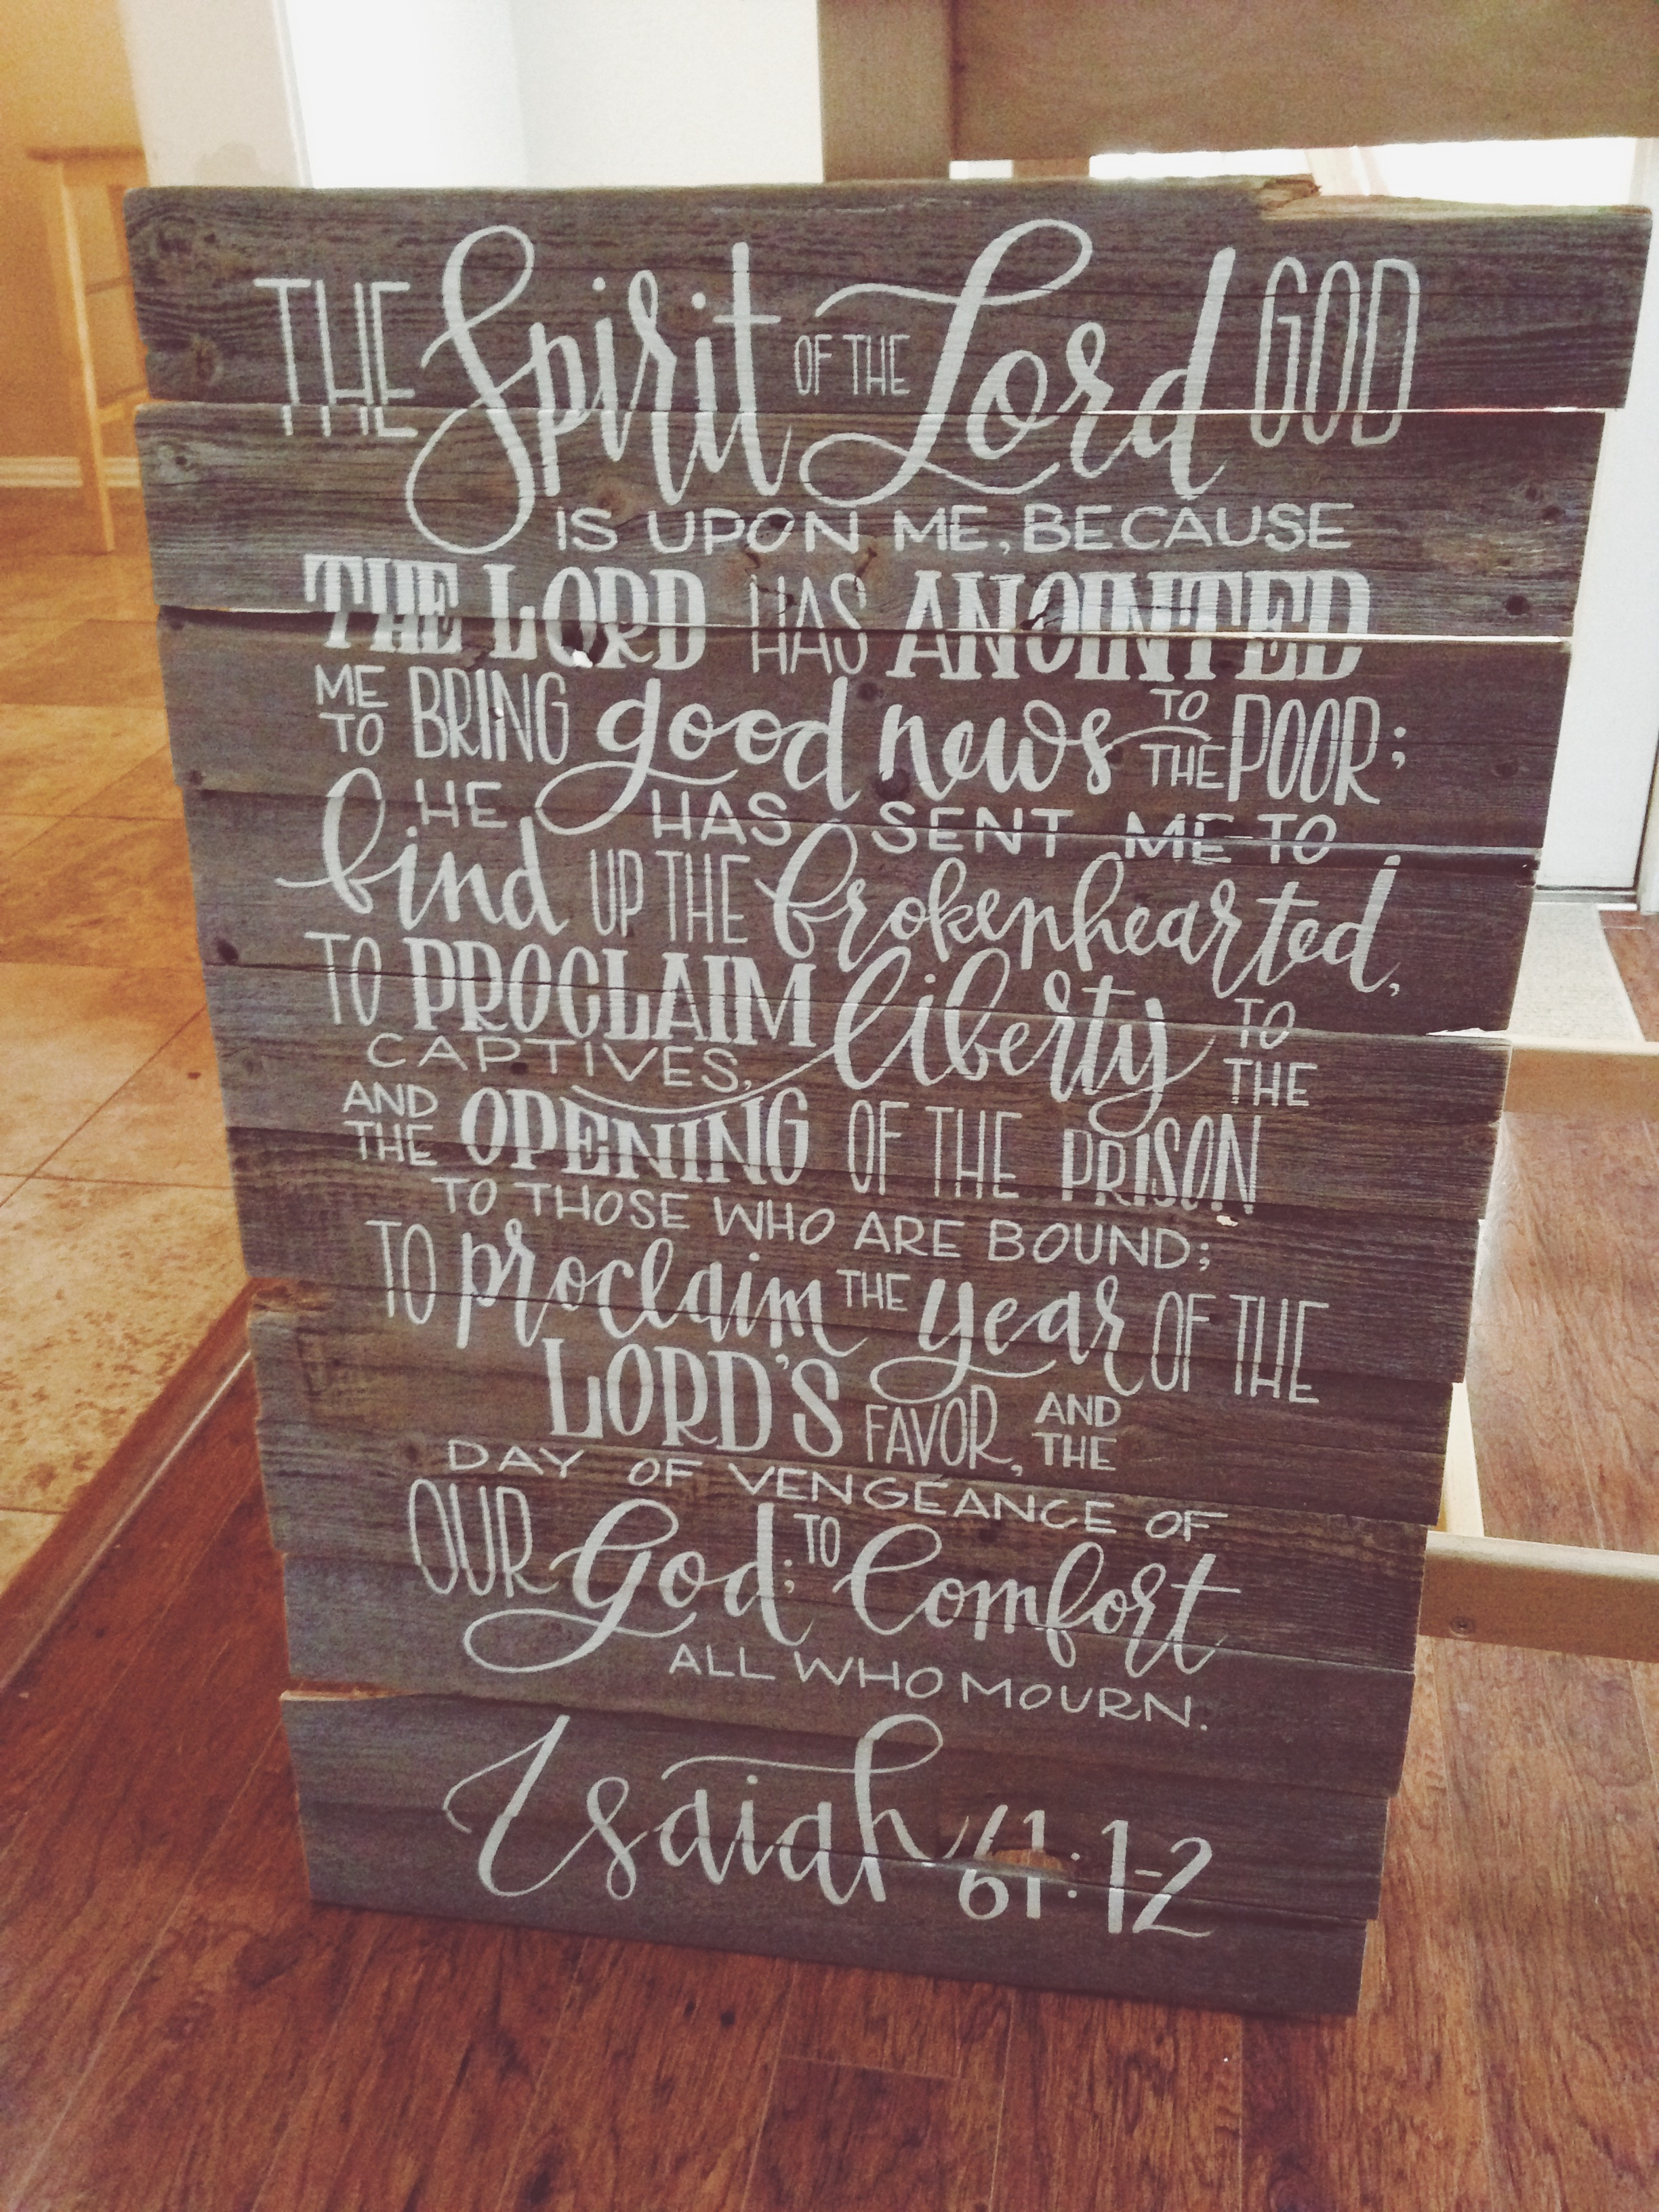 Modernly Rustic - www.modernlyrustic.com - Hand Lettered Goods in Dallas, Texas